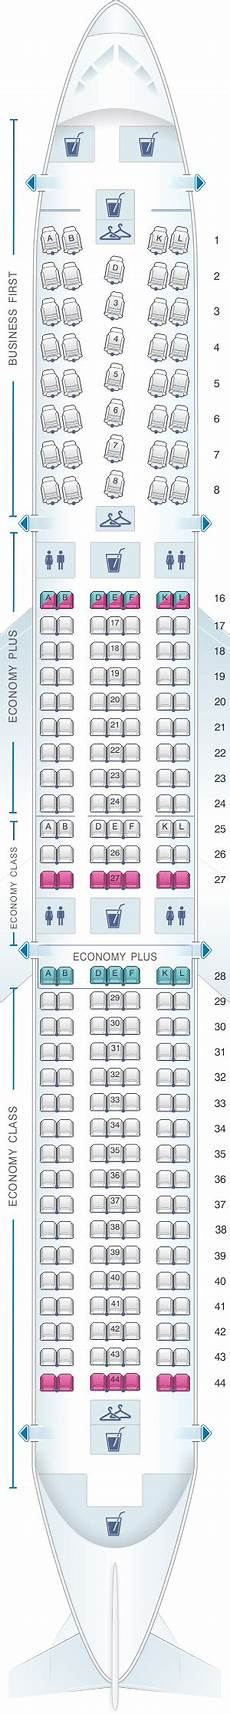 Boeing 767 400 Seating Chart Seat Map United Airlines Boeing B767 400er 764 Seatmaestro